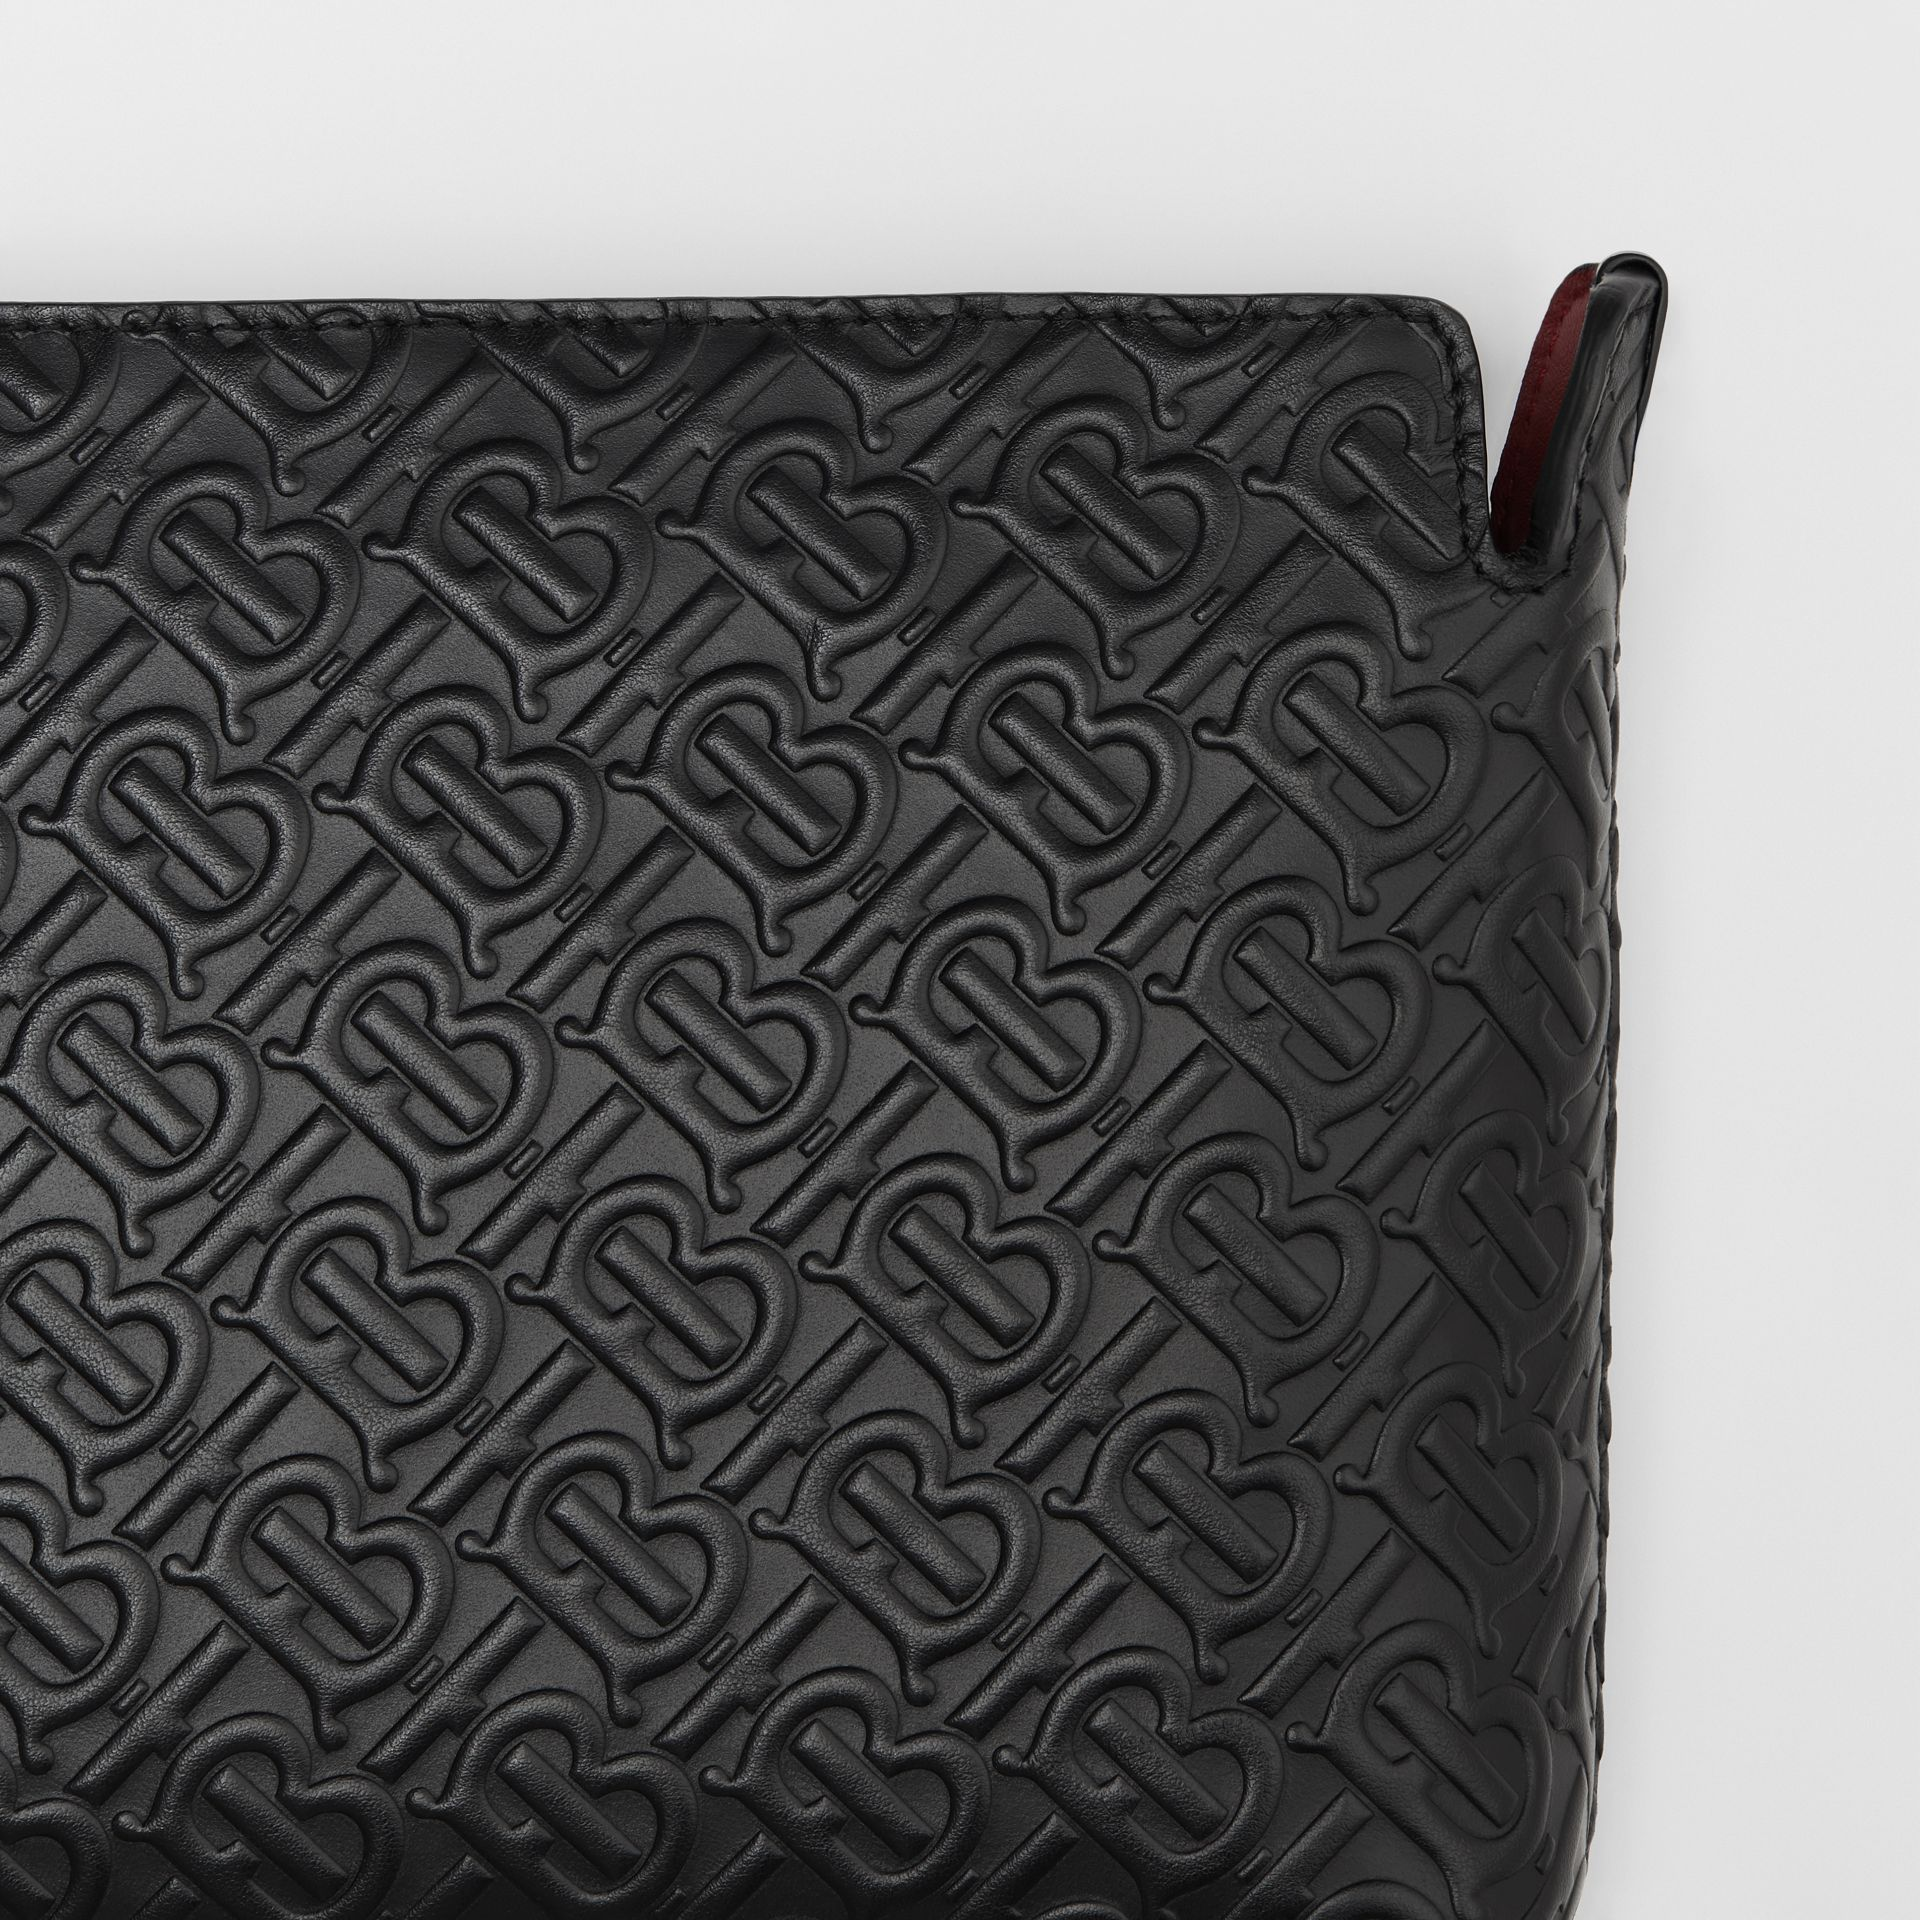 Medium Monogram Leather Clutch in Black - Women | Burberry United Kingdom - gallery image 1